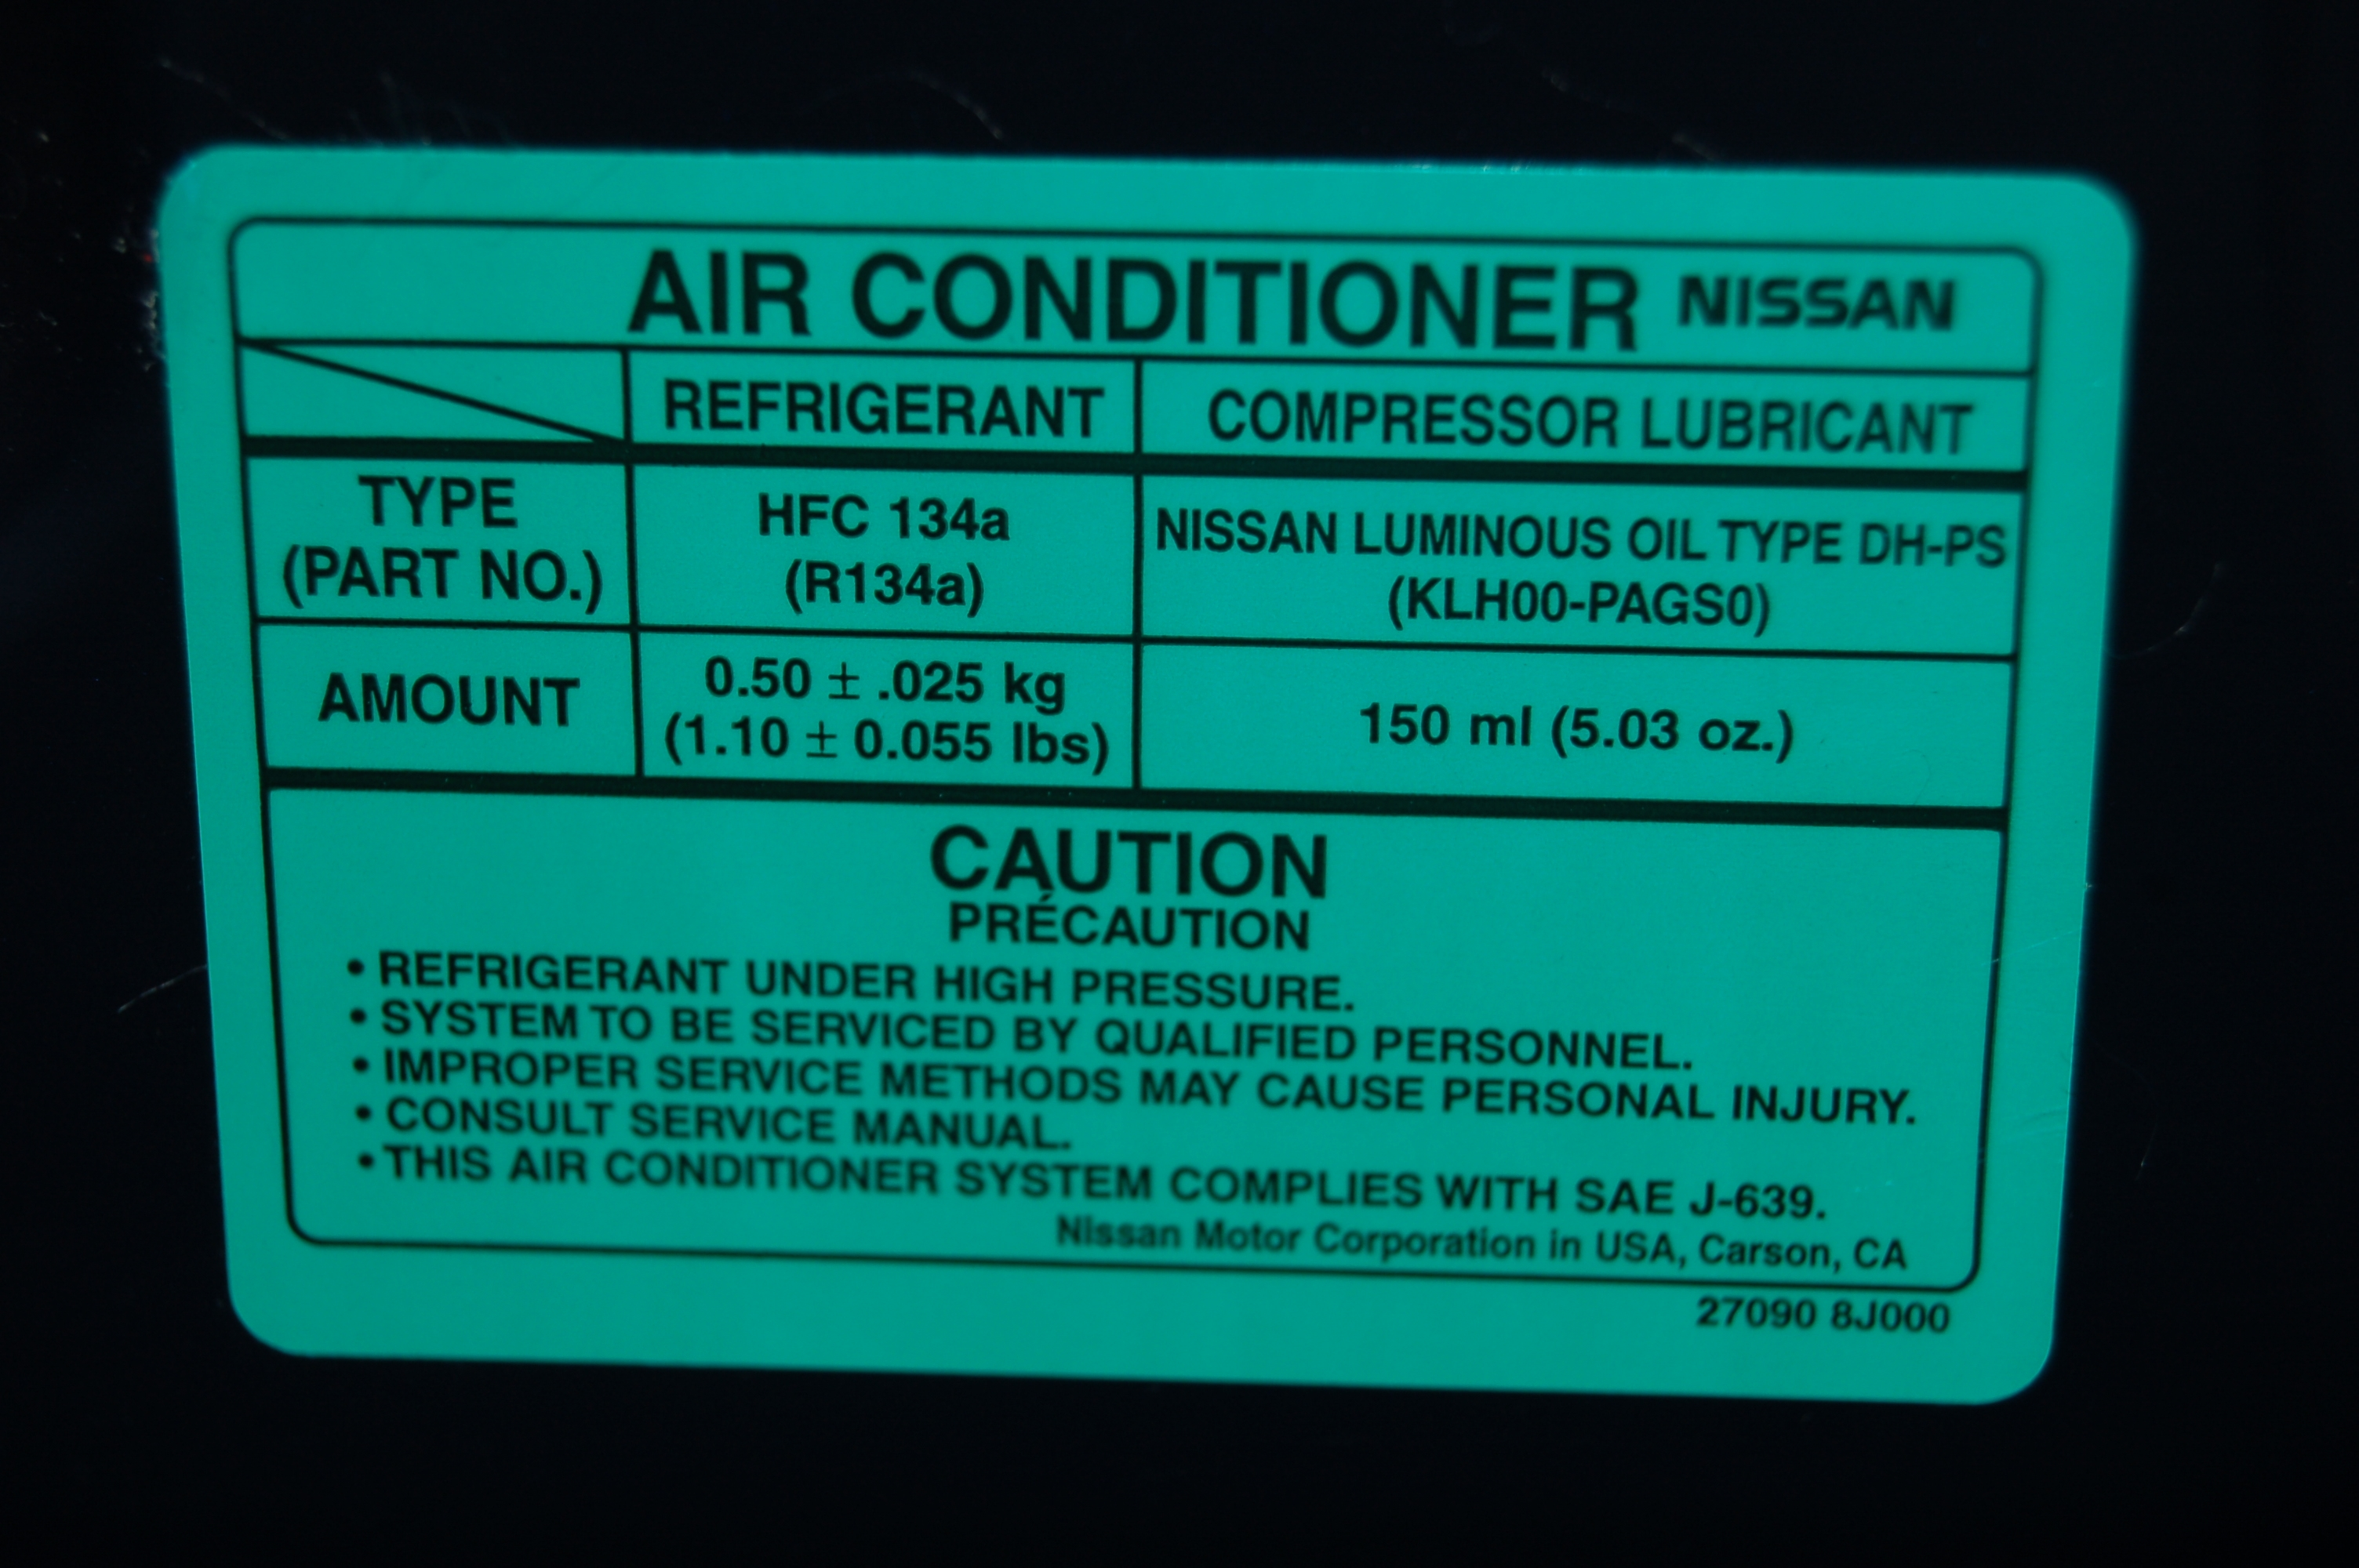 Heed the label! Mobile Air Conditioning Society (MACS) Worldwide #00AD9D